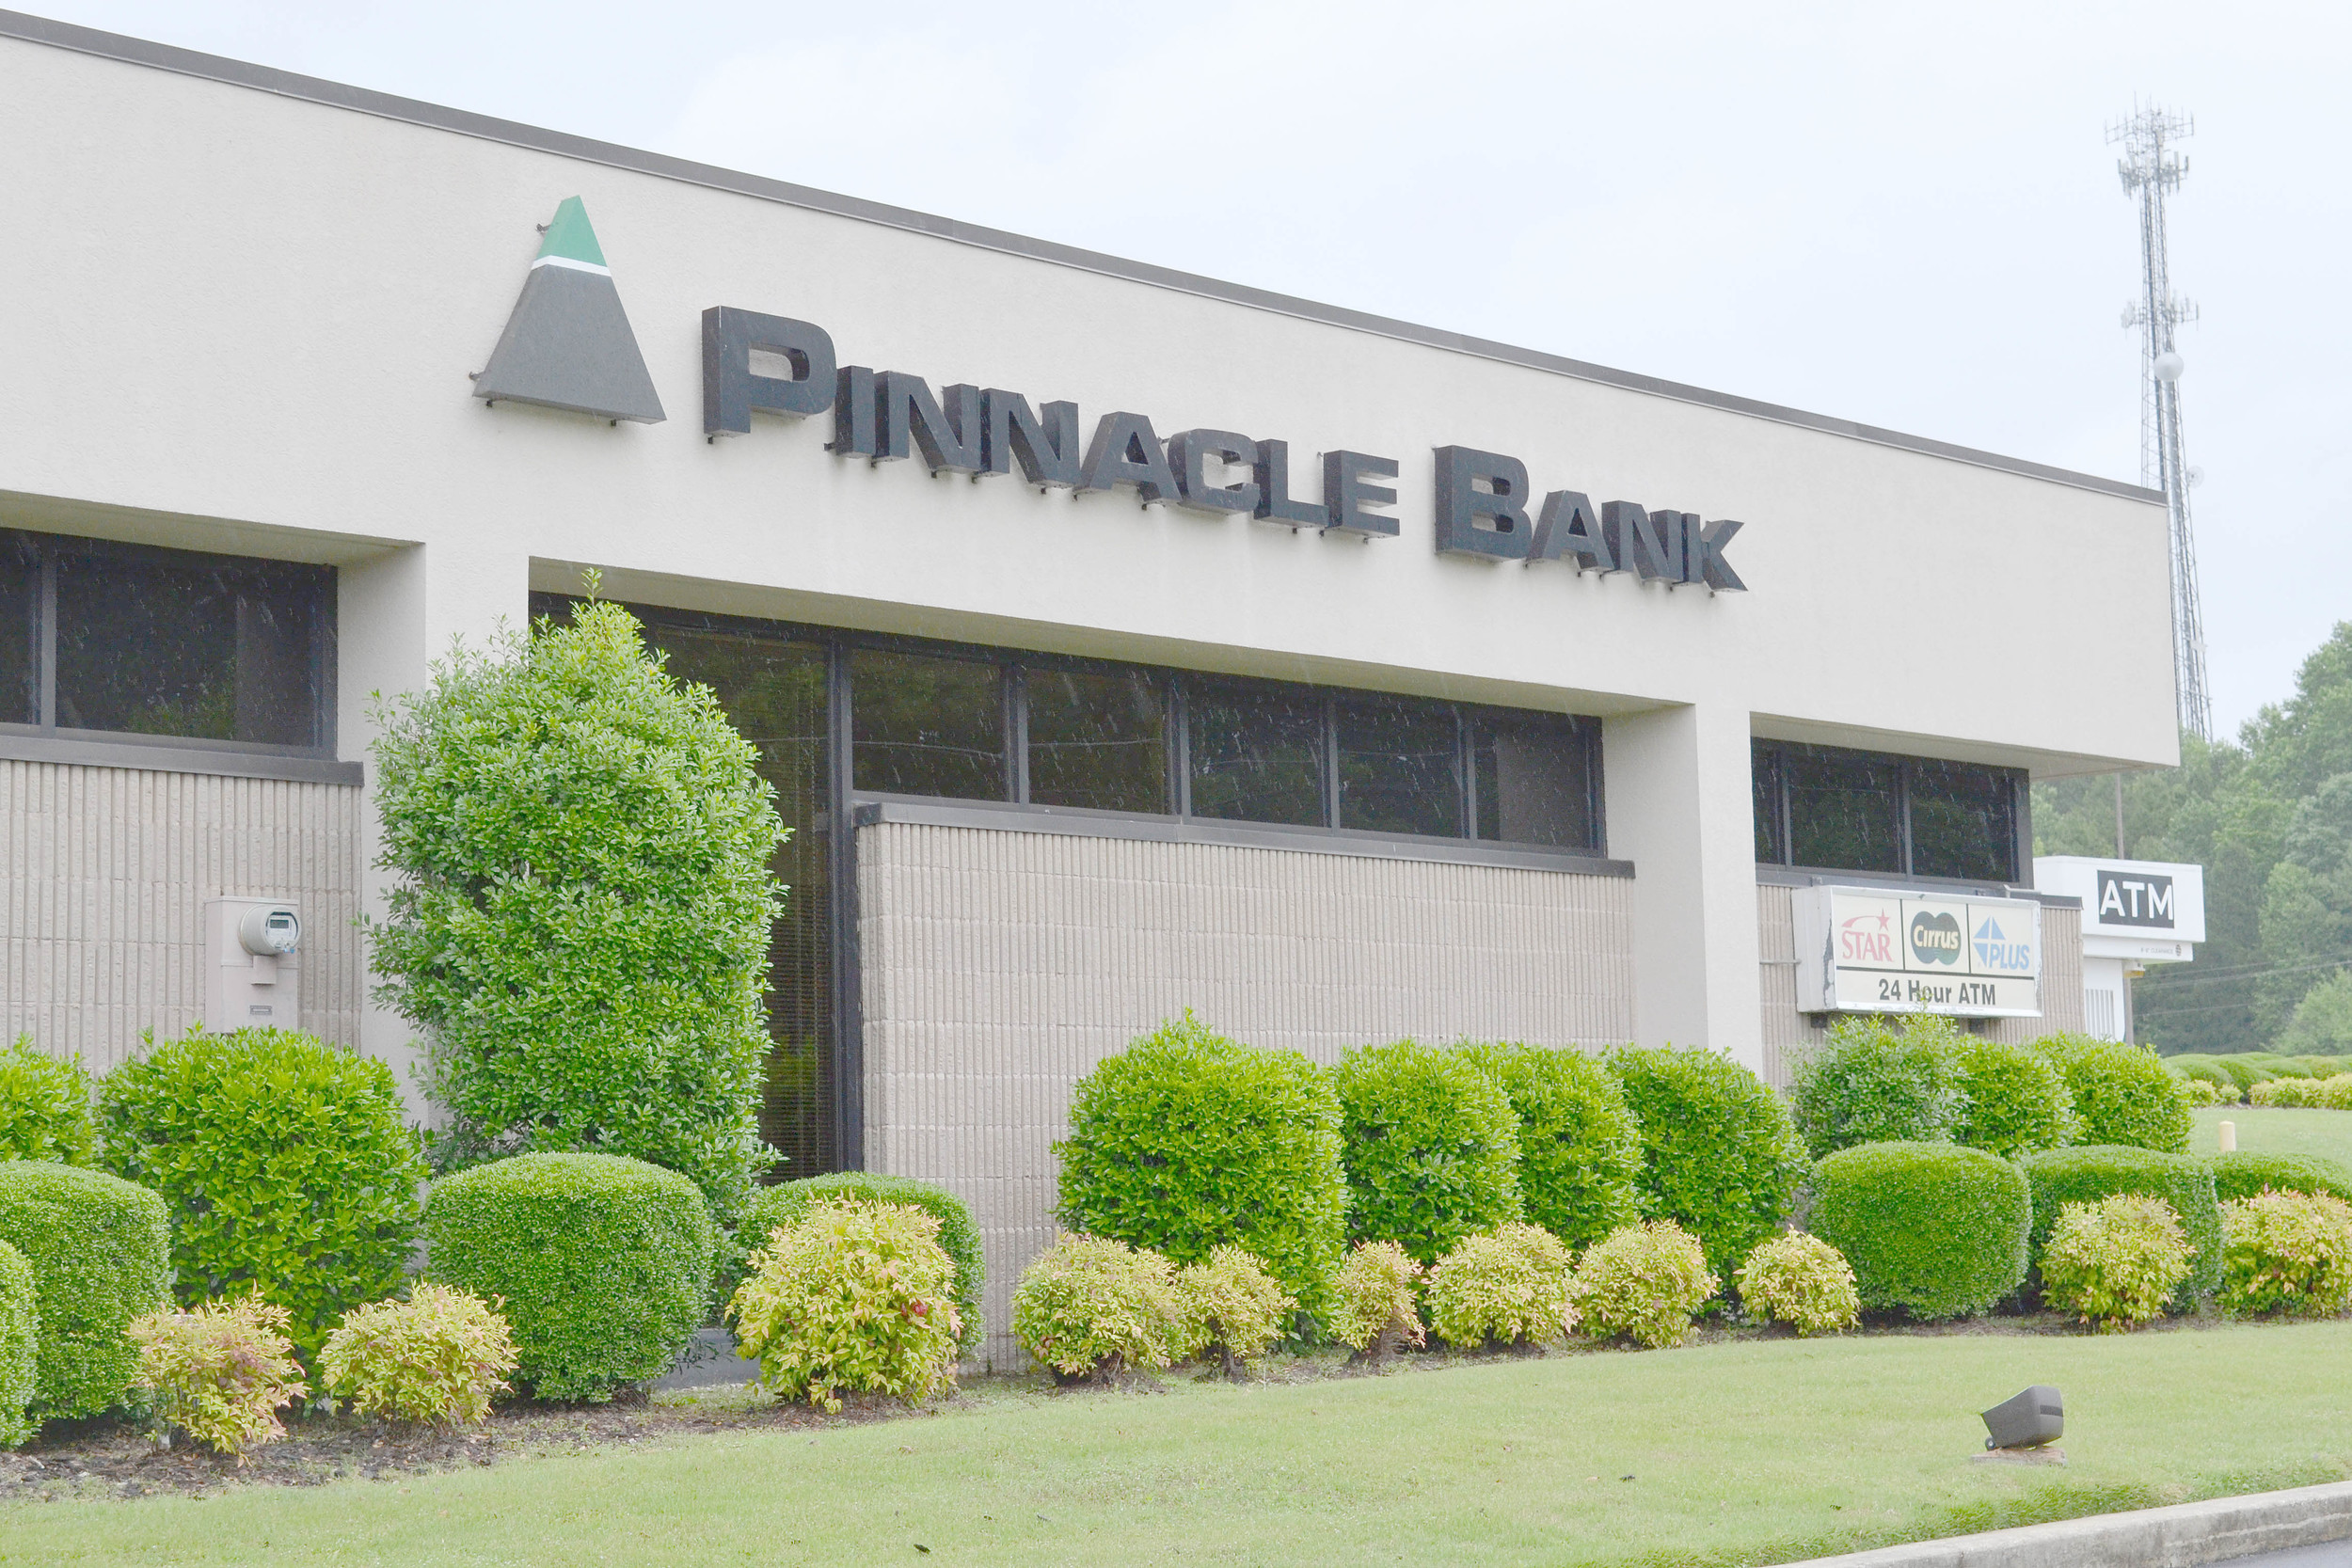 The Jasper Mall branch of Pinnacle Bank will soon be closing, bank officials announced this week. A new drive-through branch will be opening on Highway 118 later this year. Daily Mountain Eagle - Ed Howell